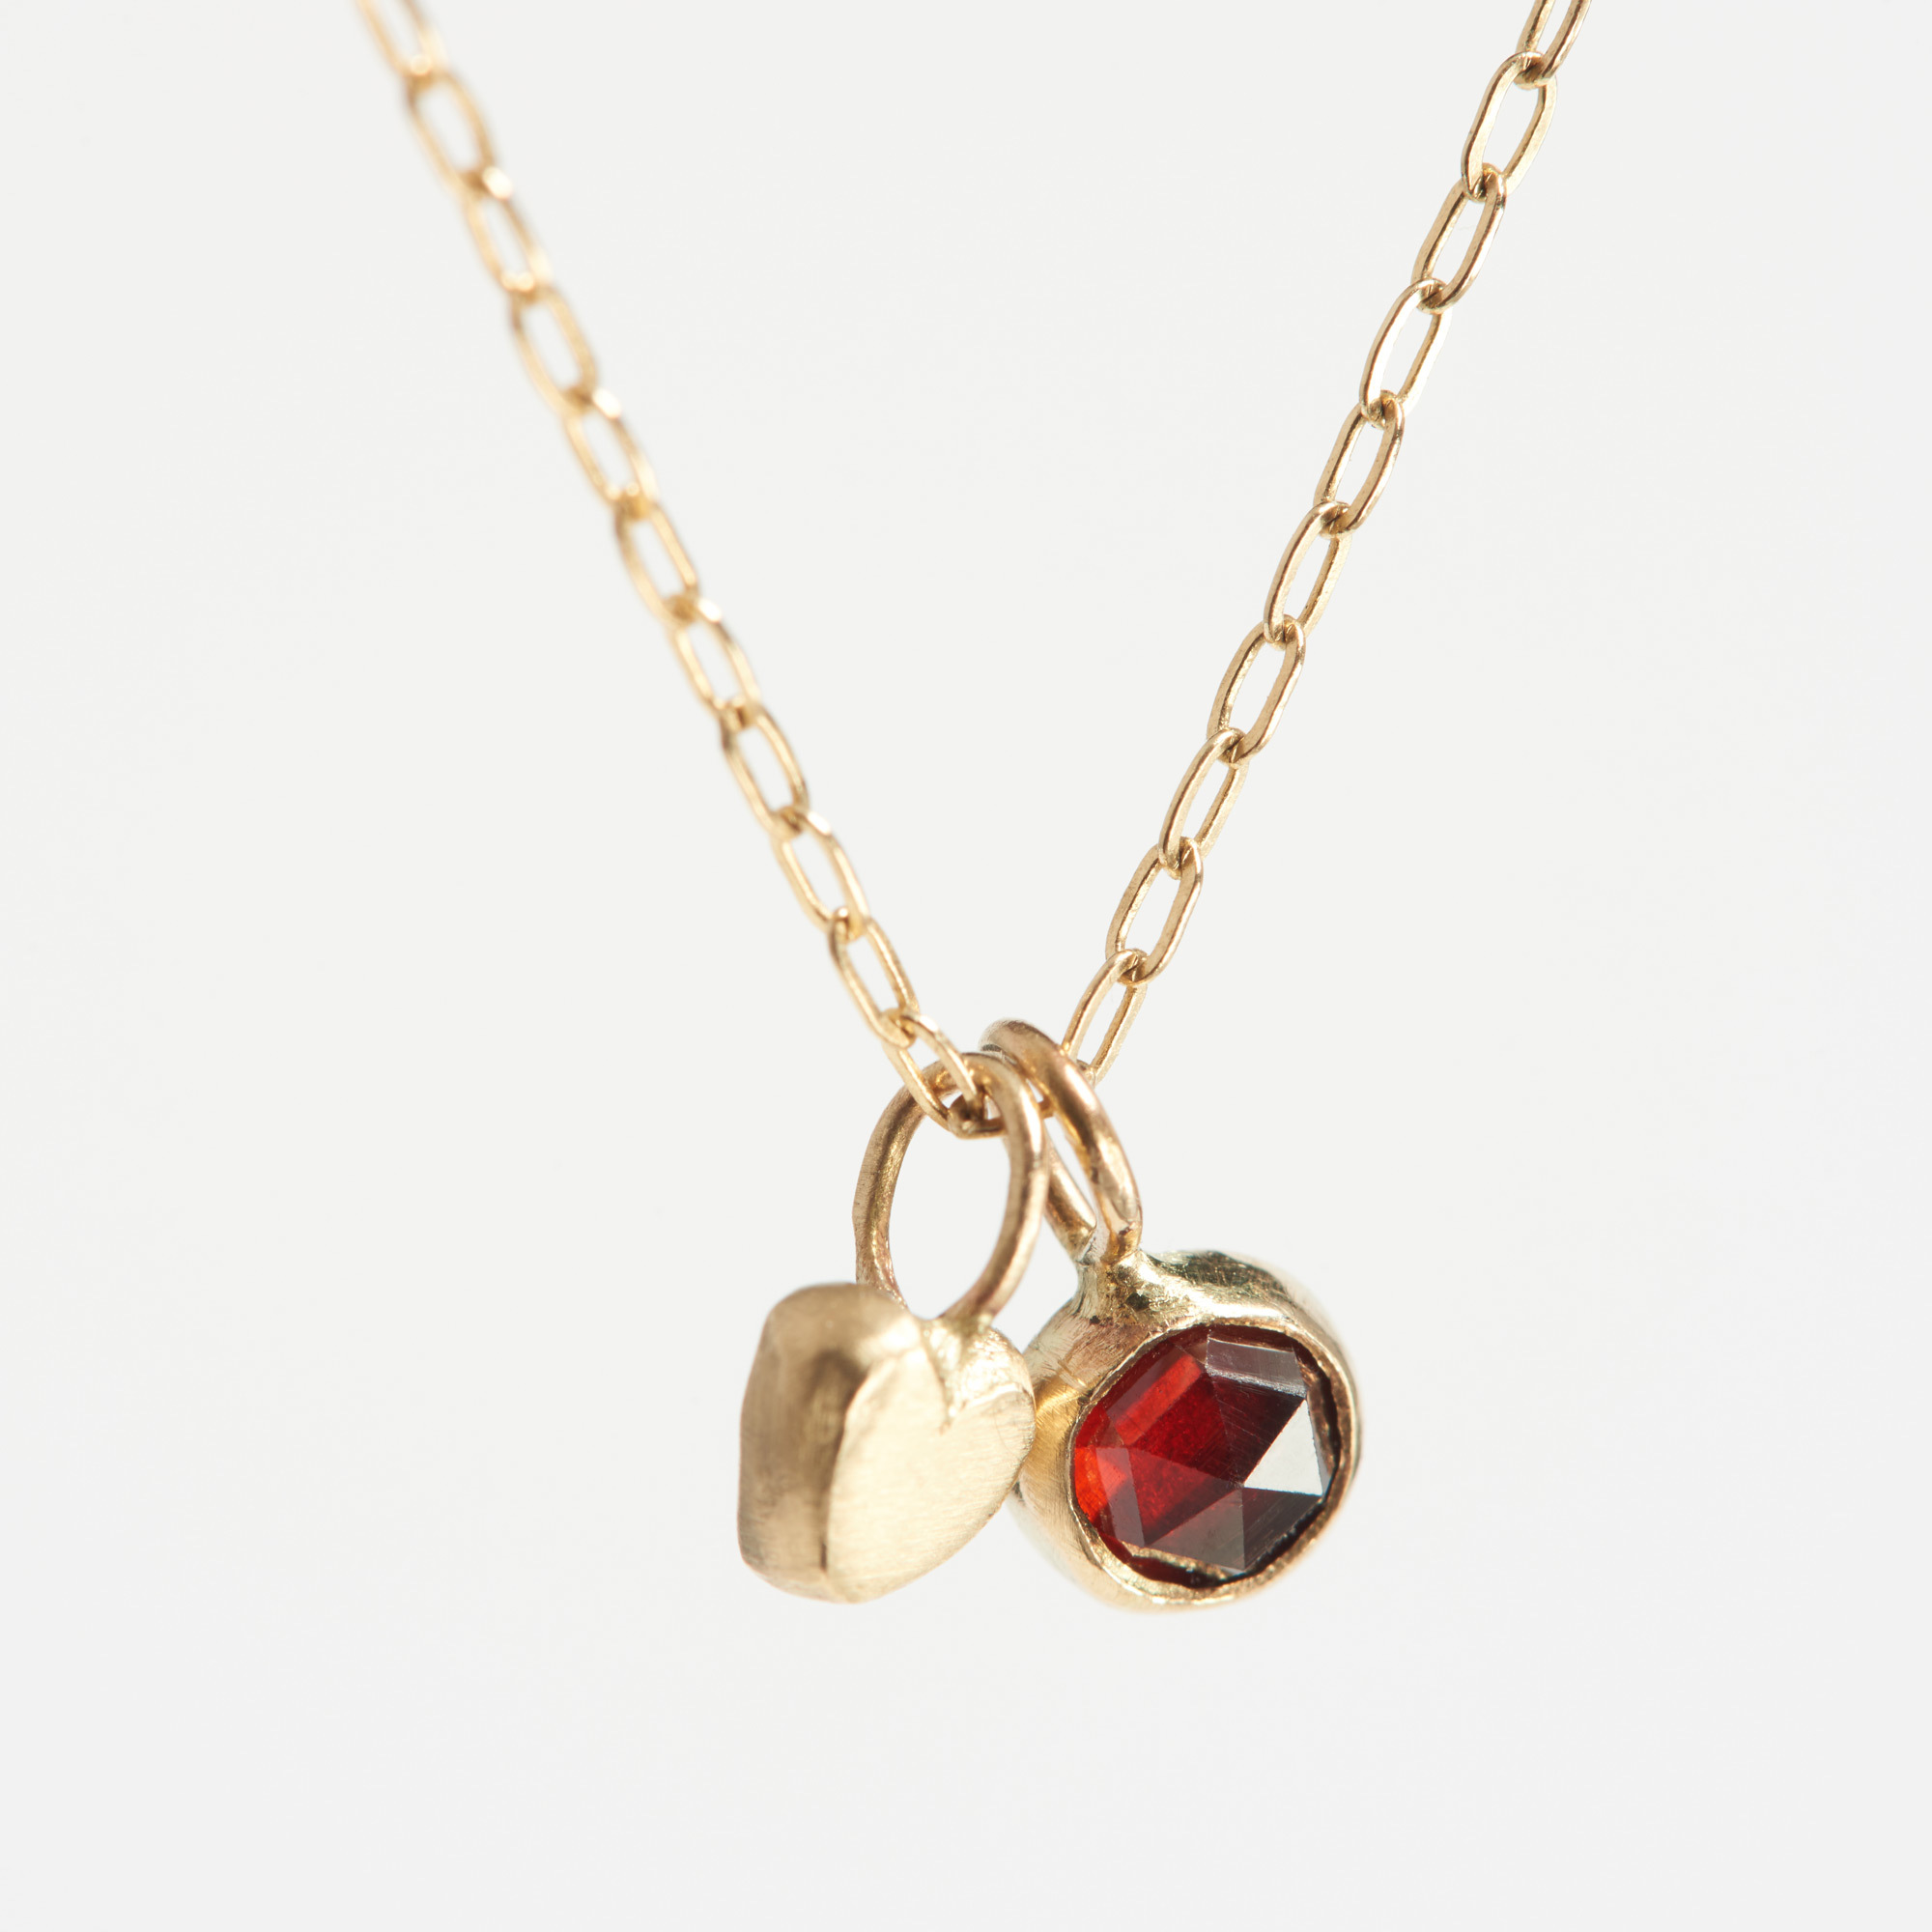 14k Gold Heart And Garnet Limited Edition Charm Necklace